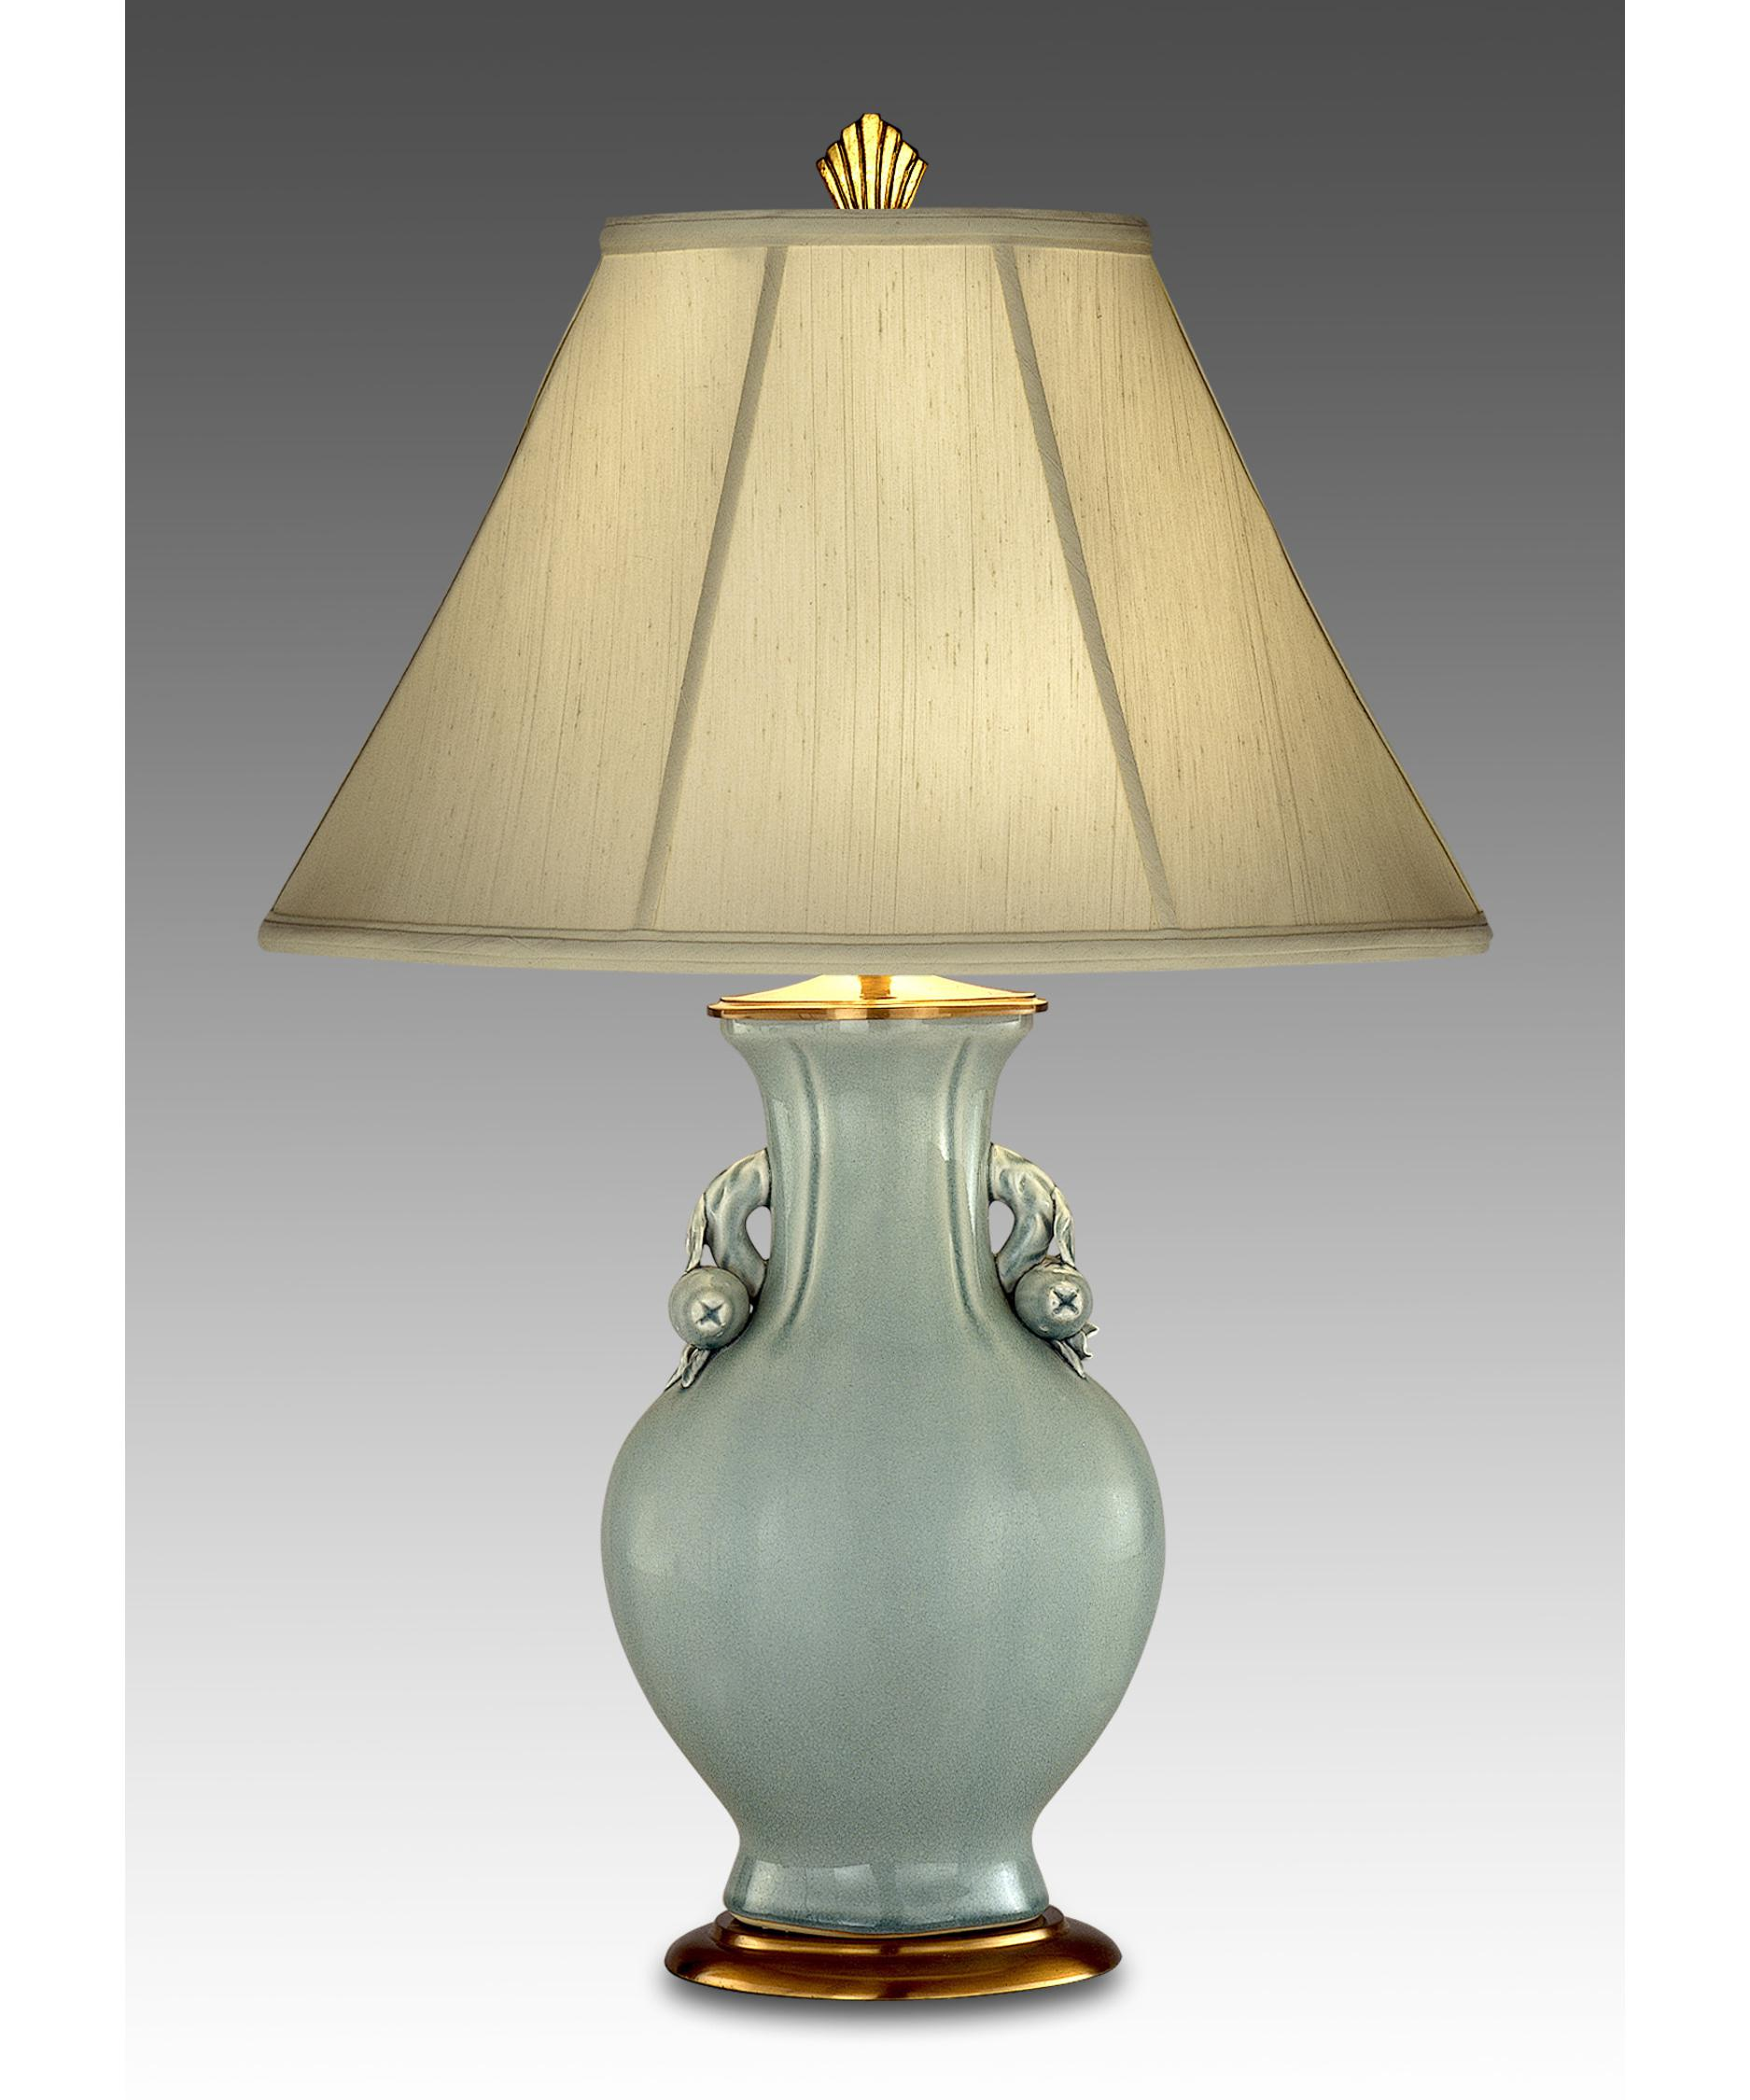 Antique porcelain table lamps - Shown In Celadon With Antique Brass Finish And Brussels Cream Shade